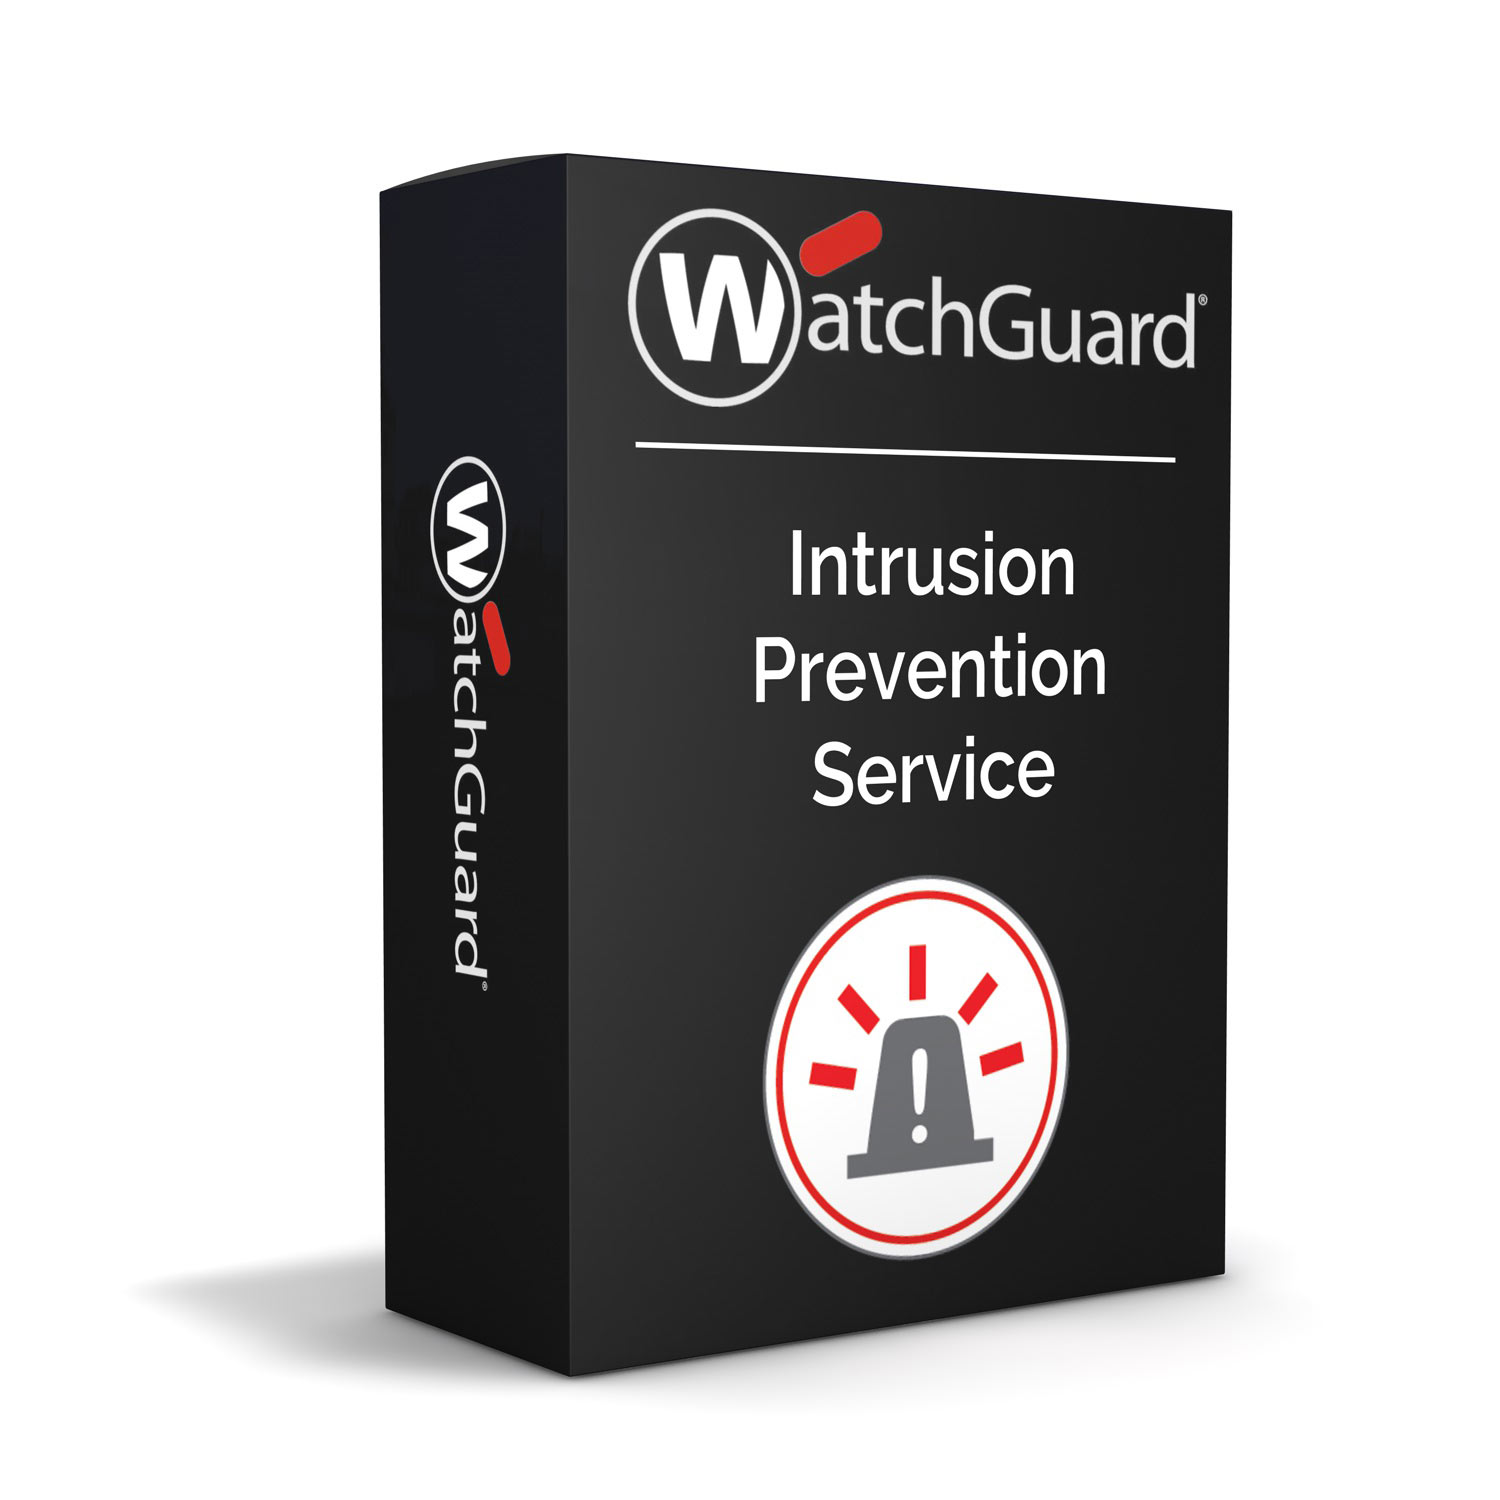 WatchGuard Intrusion Prevention System 1-yr for Firebox T50 Models